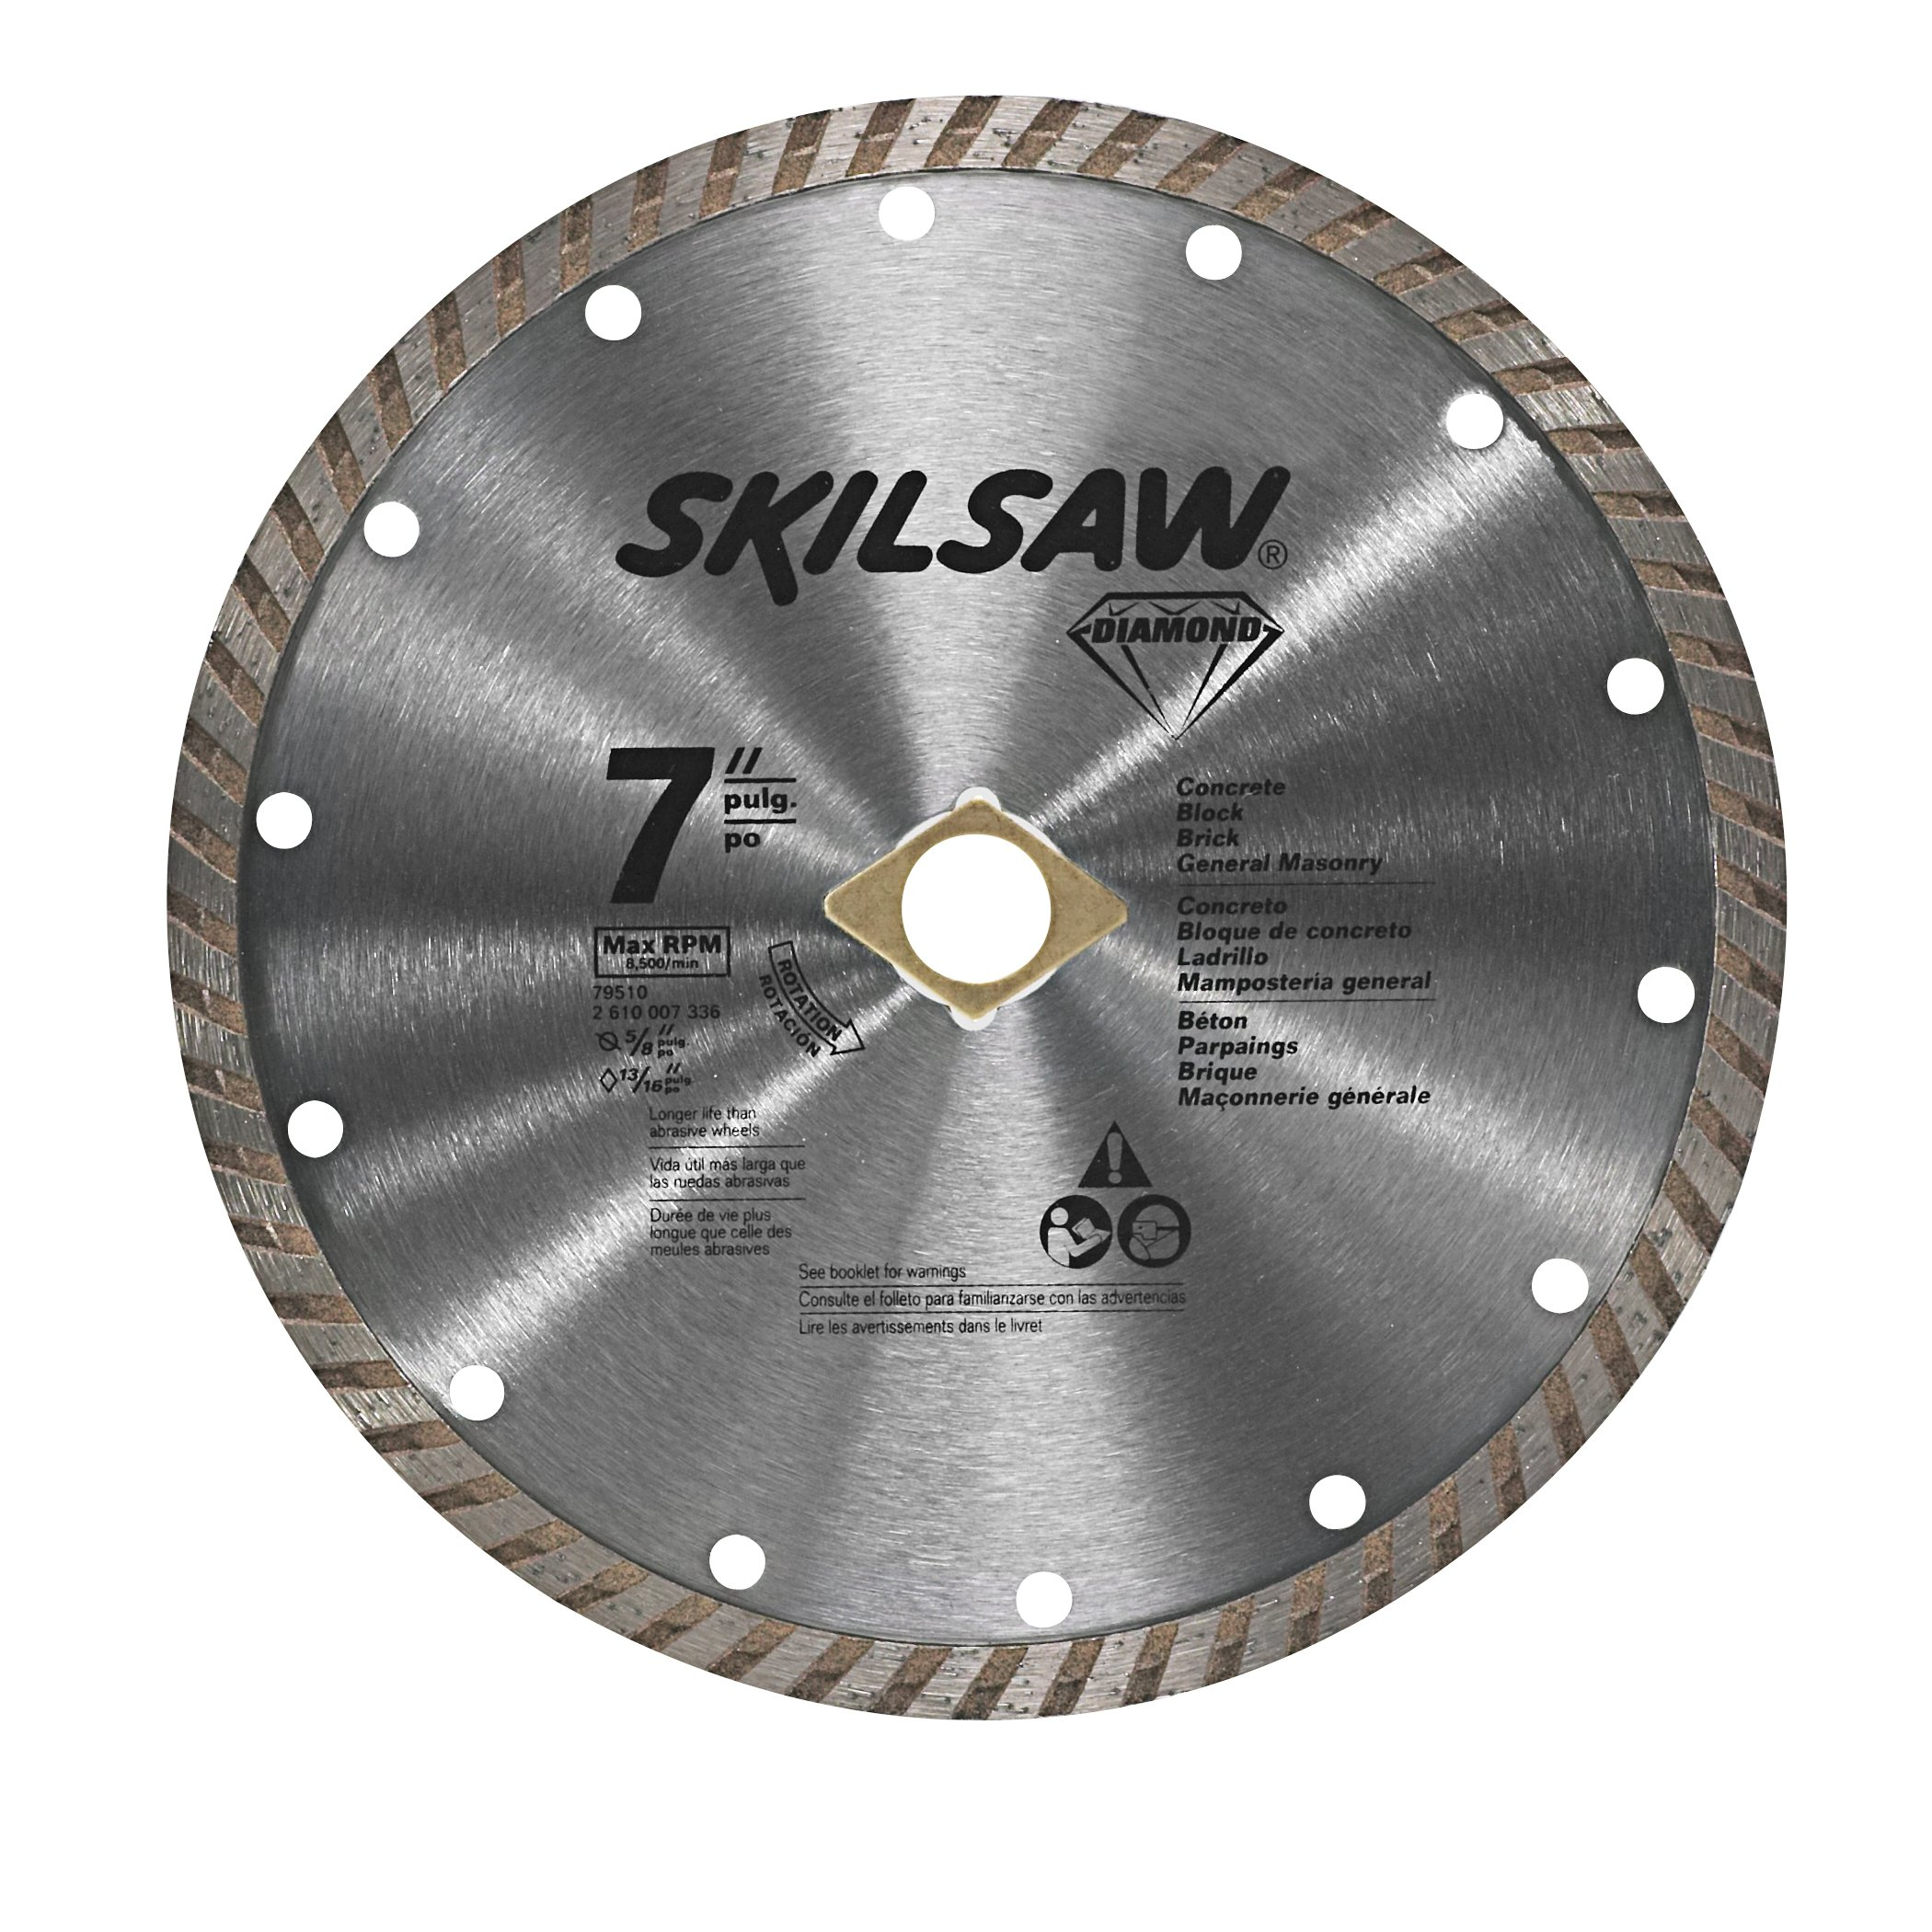 Best rated in circular saw blades helpful customer reviews skil 79510c 7 inch turbo rim diamond blade product image greentooth Choice Image